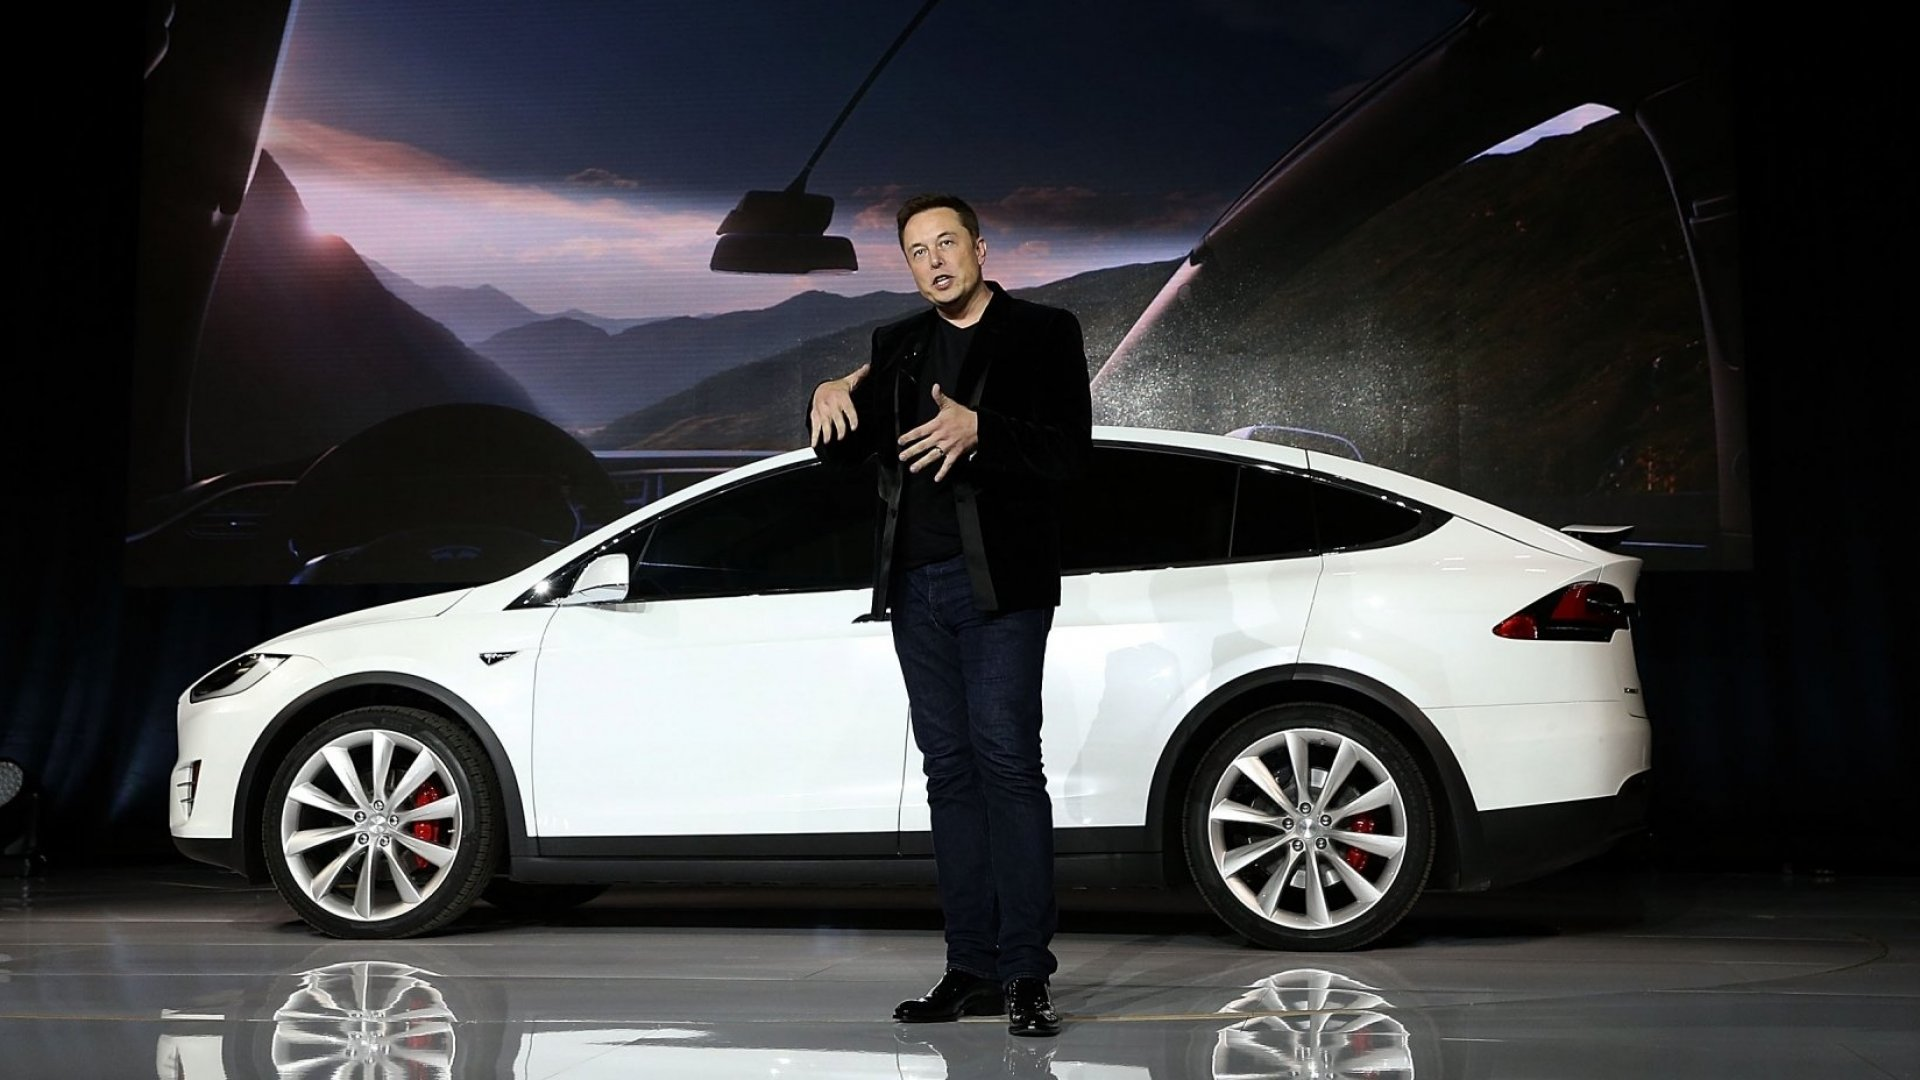 Tesla Is Under Criminal Investigation for ElonMusk's Tweets About Taking the Company Private